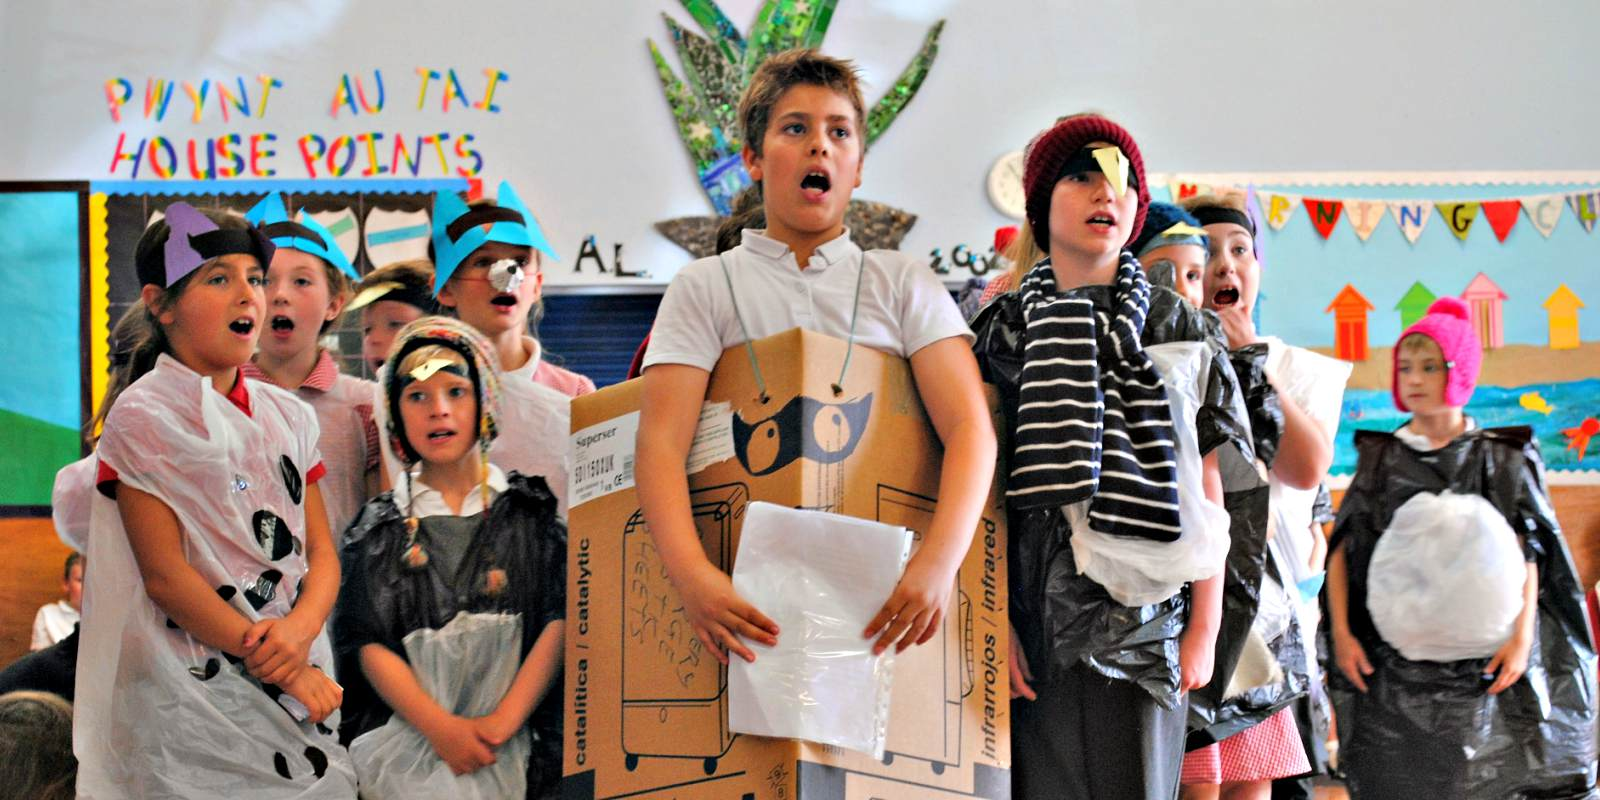 School children singing opera